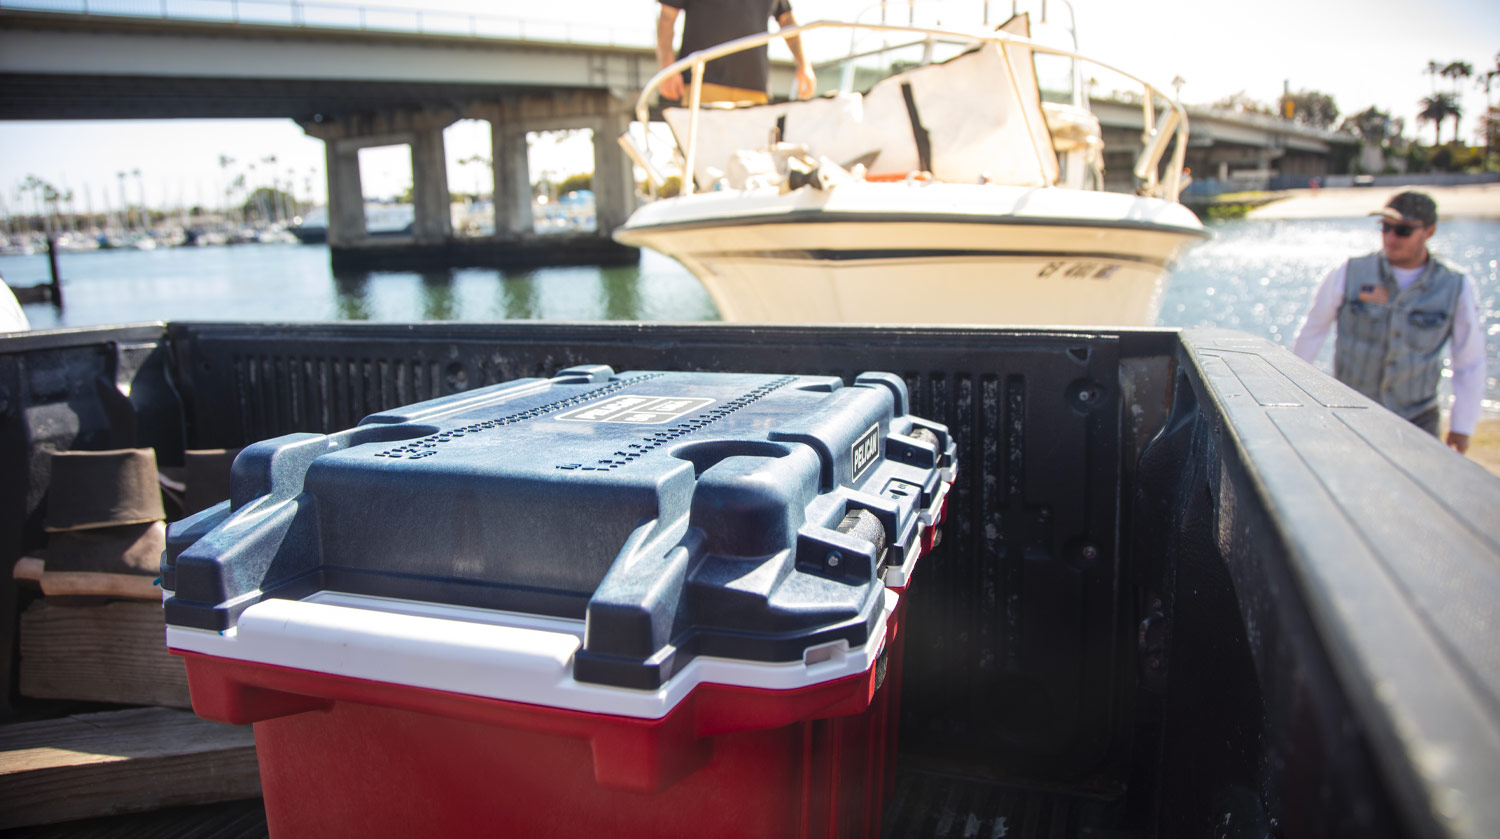 pelican professional blog how to choose the perfect cooler for summer